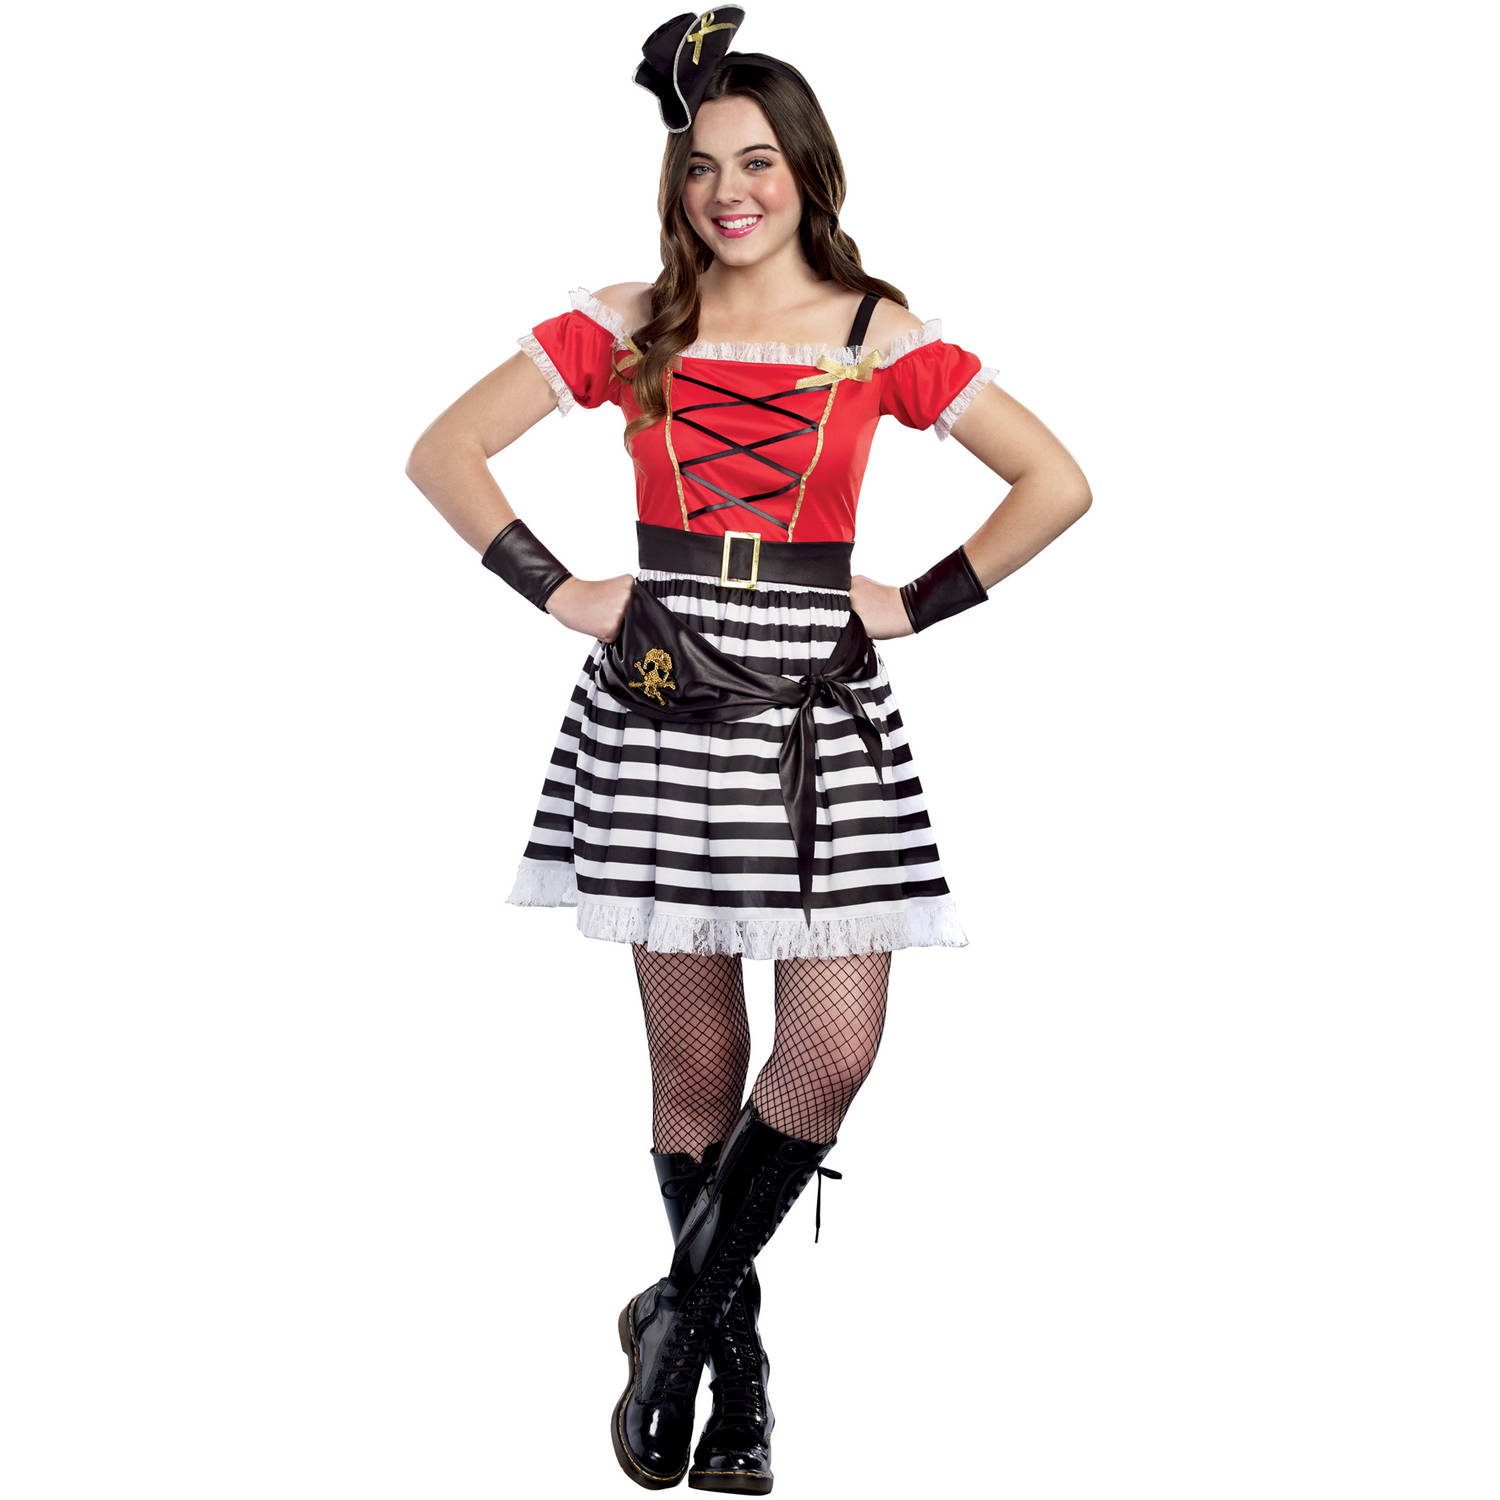 Cap'n Cutie Teen Halloween Dress Up / Role Play Costume